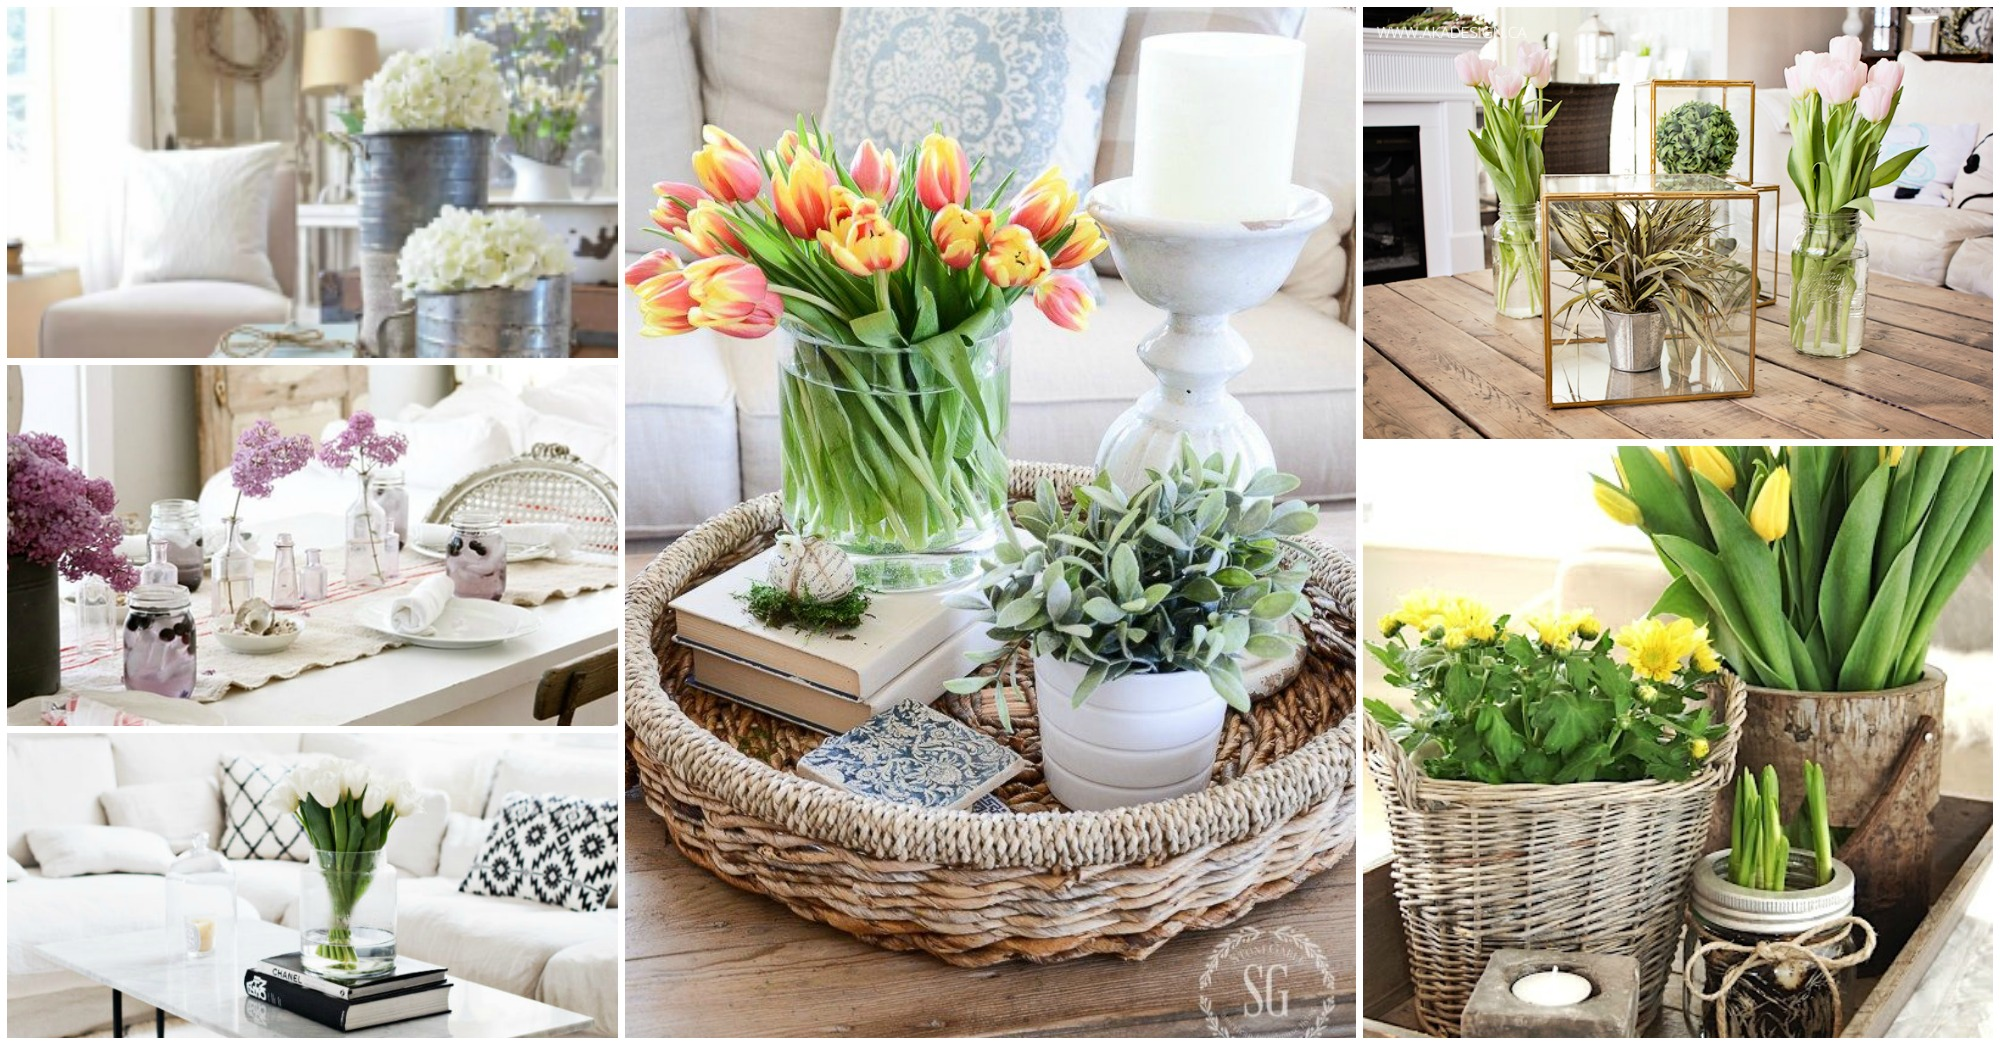 Spring Coffee Table Decor! See How They Did It!